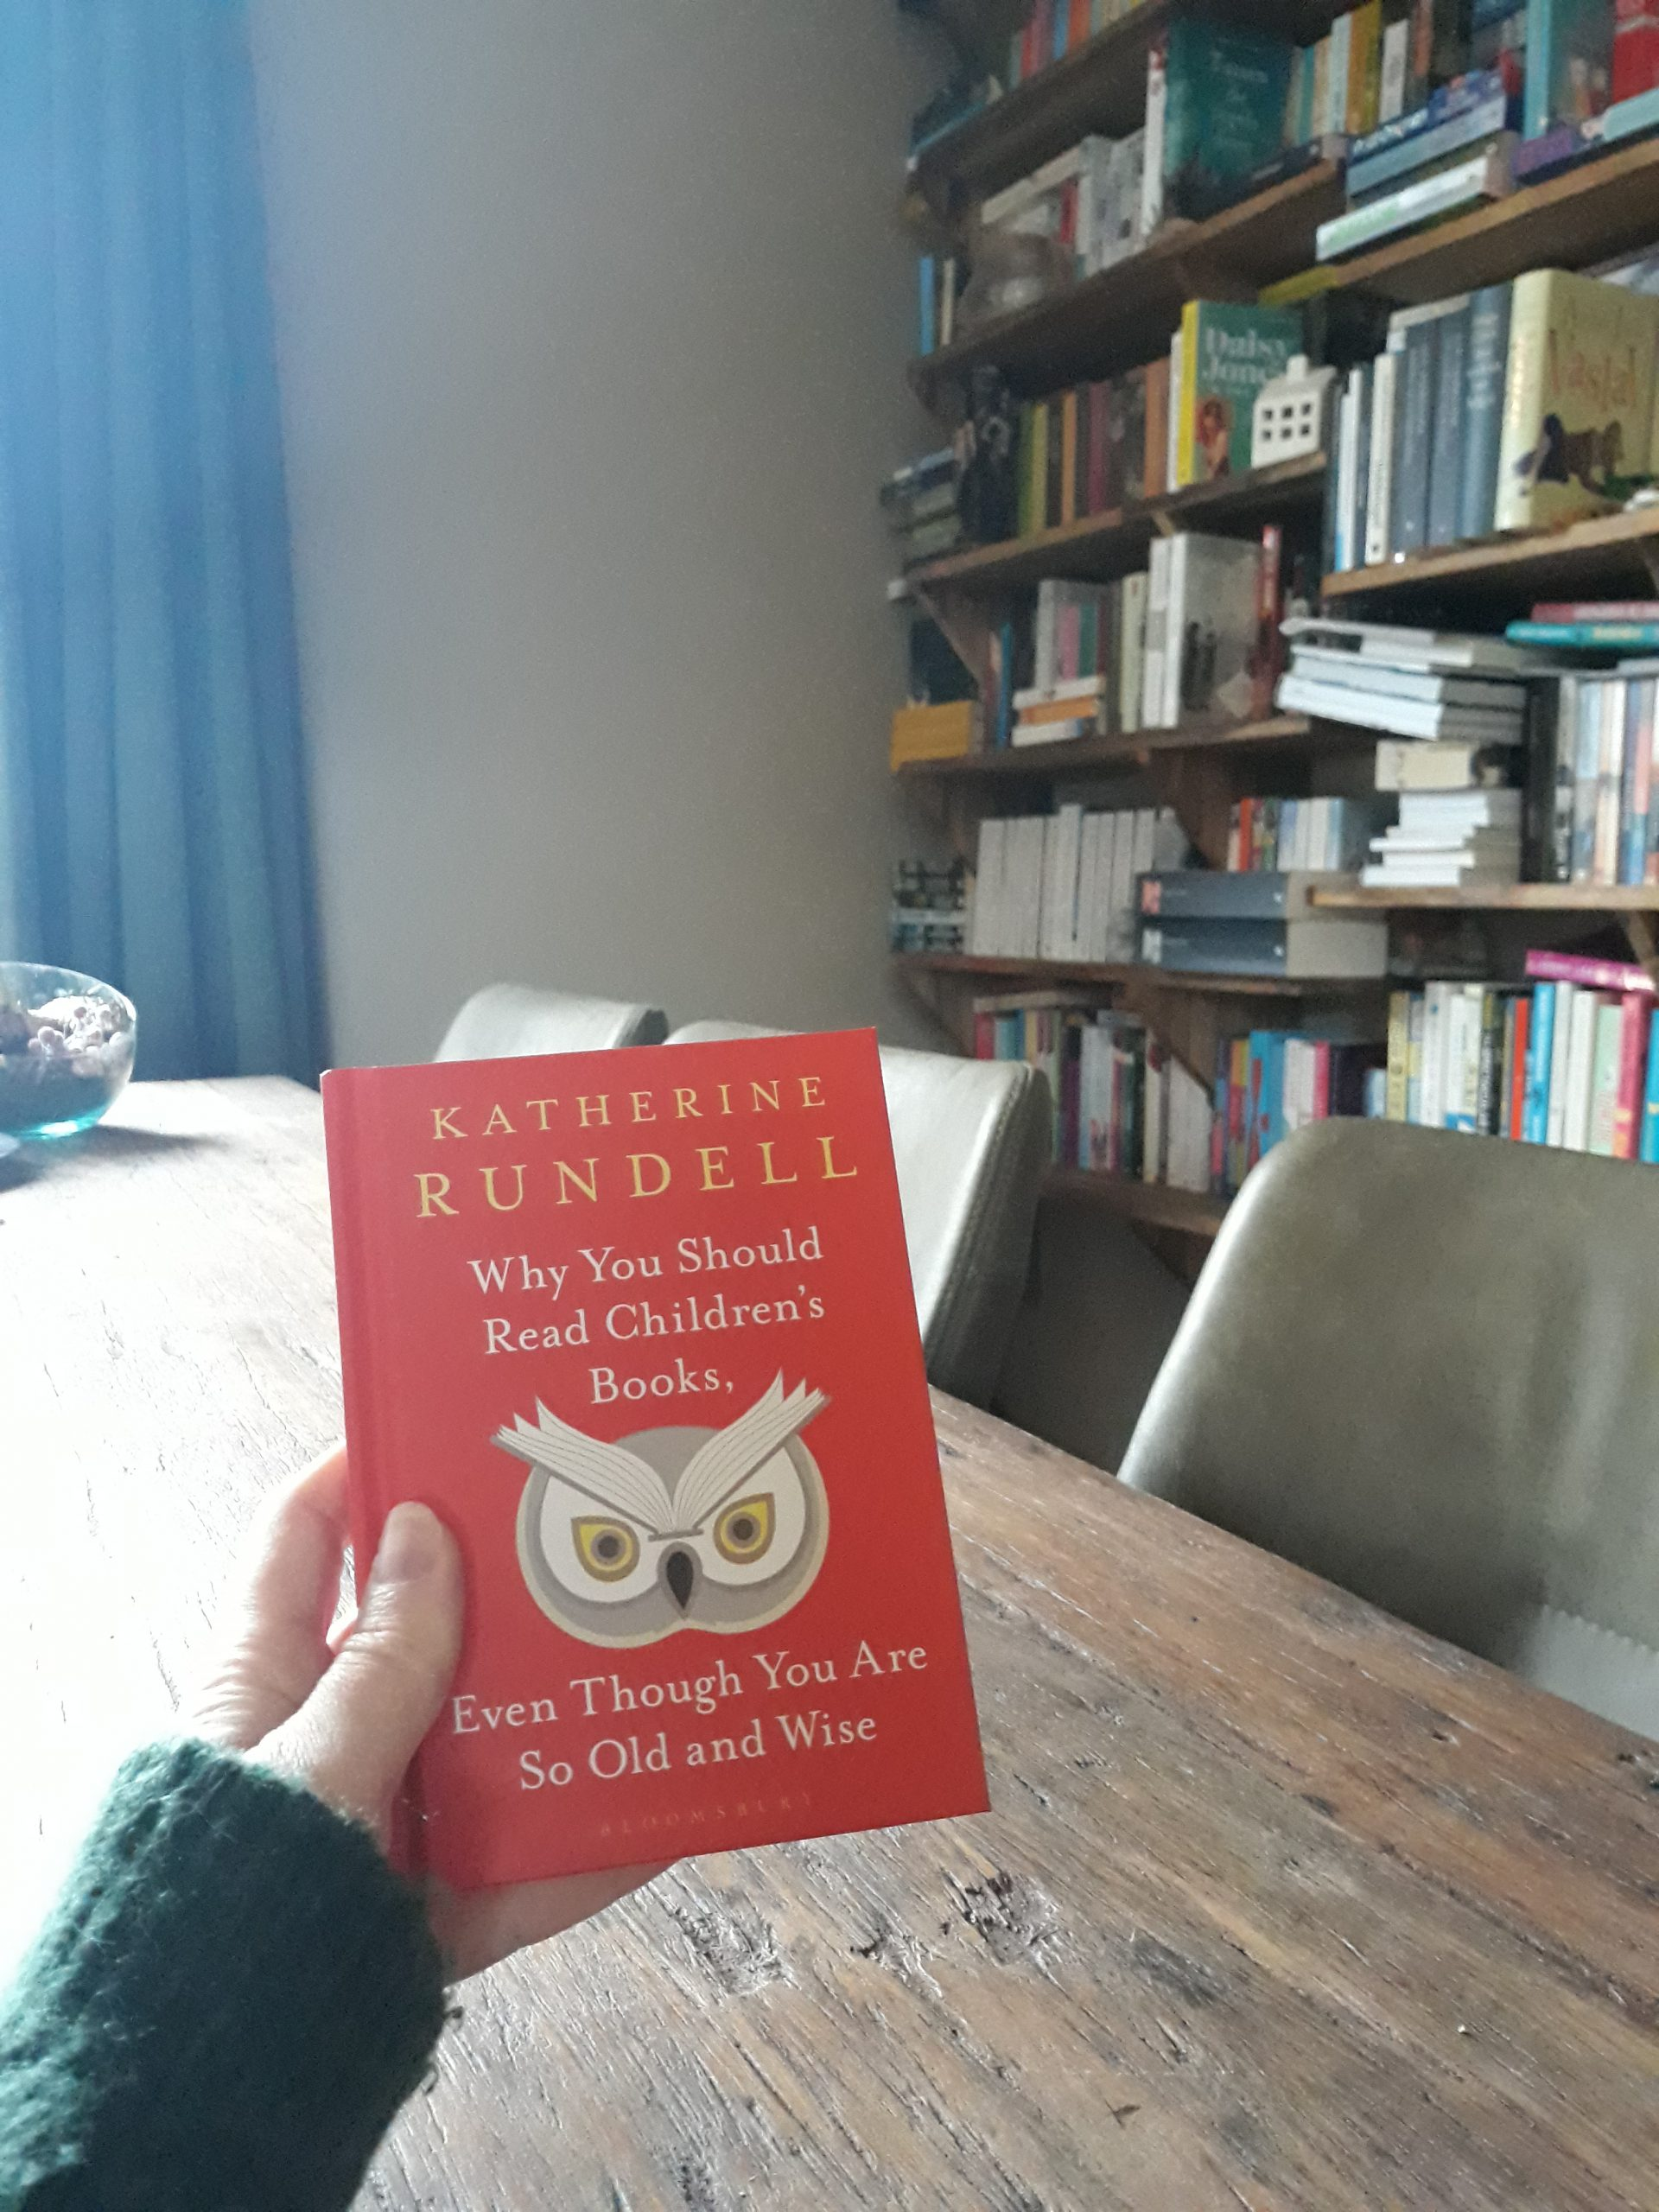 Boekrecensie: Why you should read children's books, even though you are so old and wise